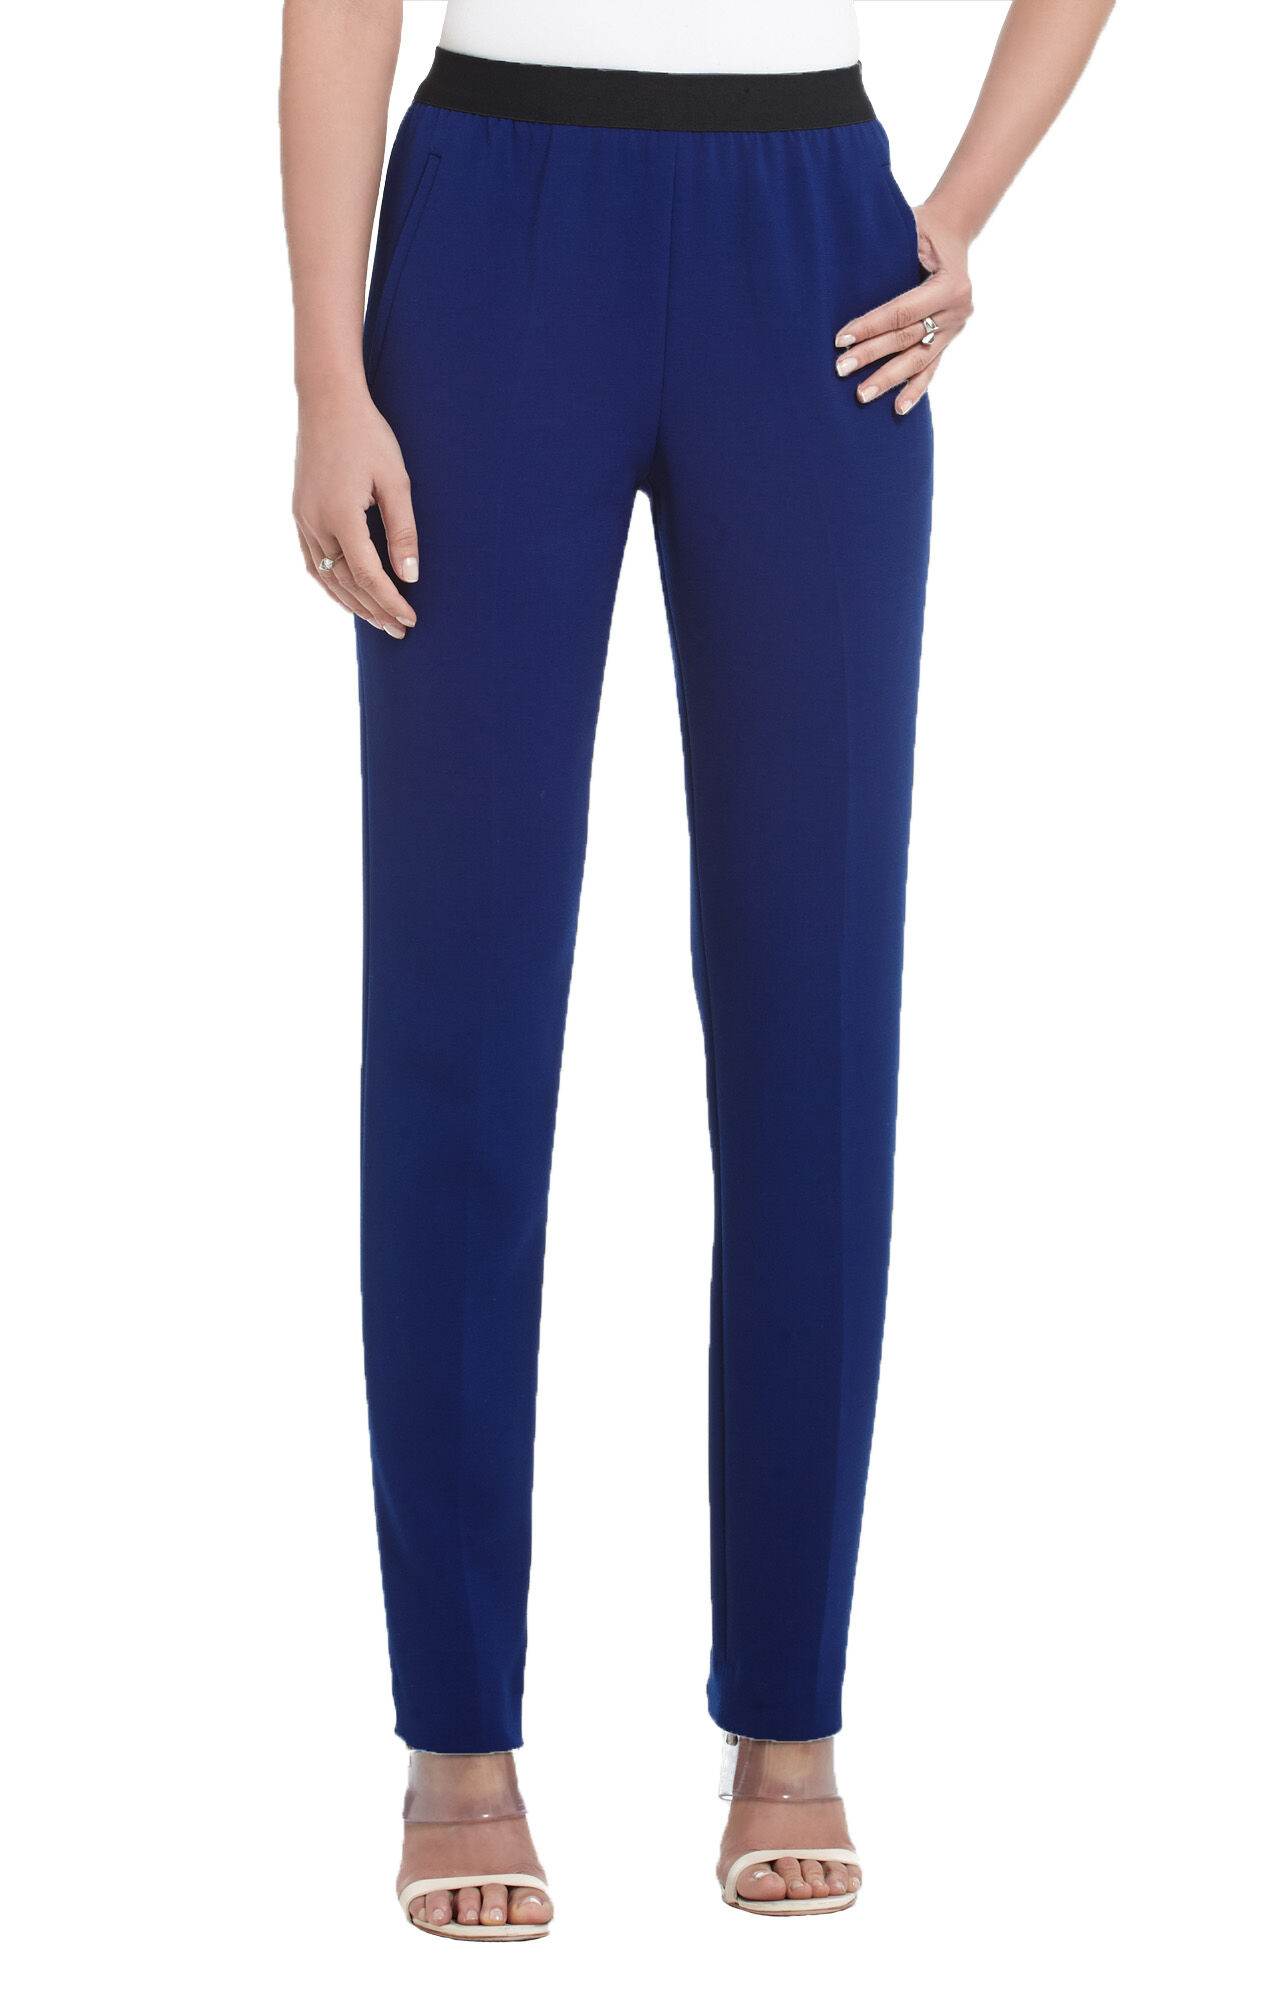 Michael Relaxed-Fit Tuxedo Pant